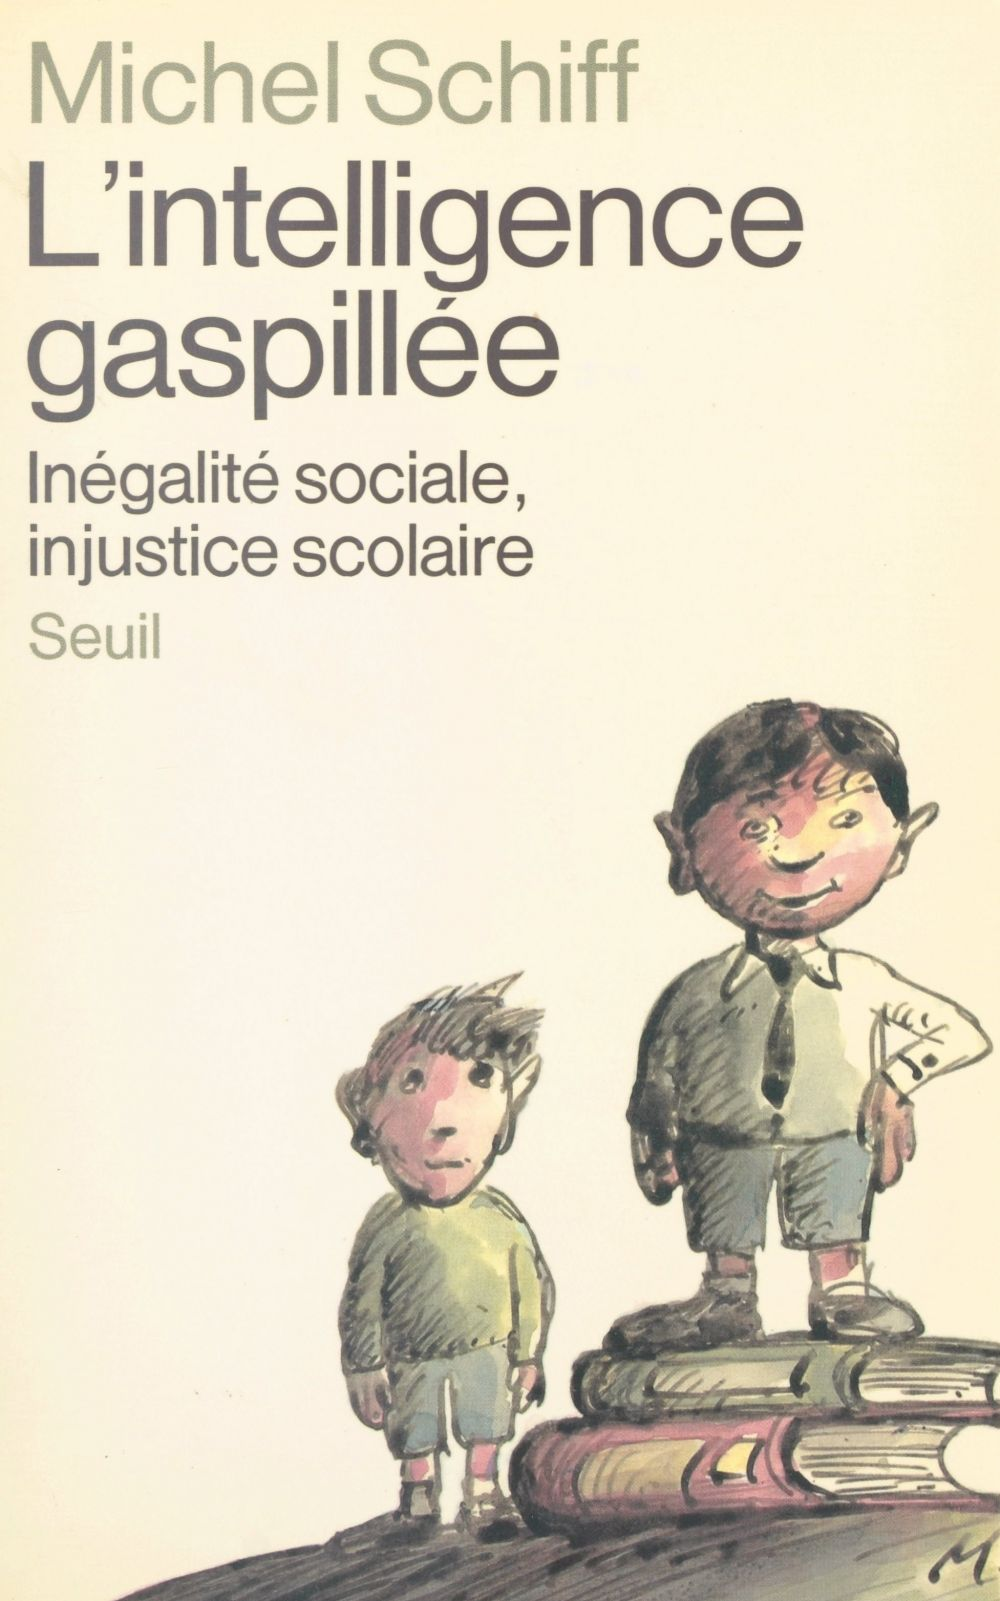 L'intelligence gaspillée